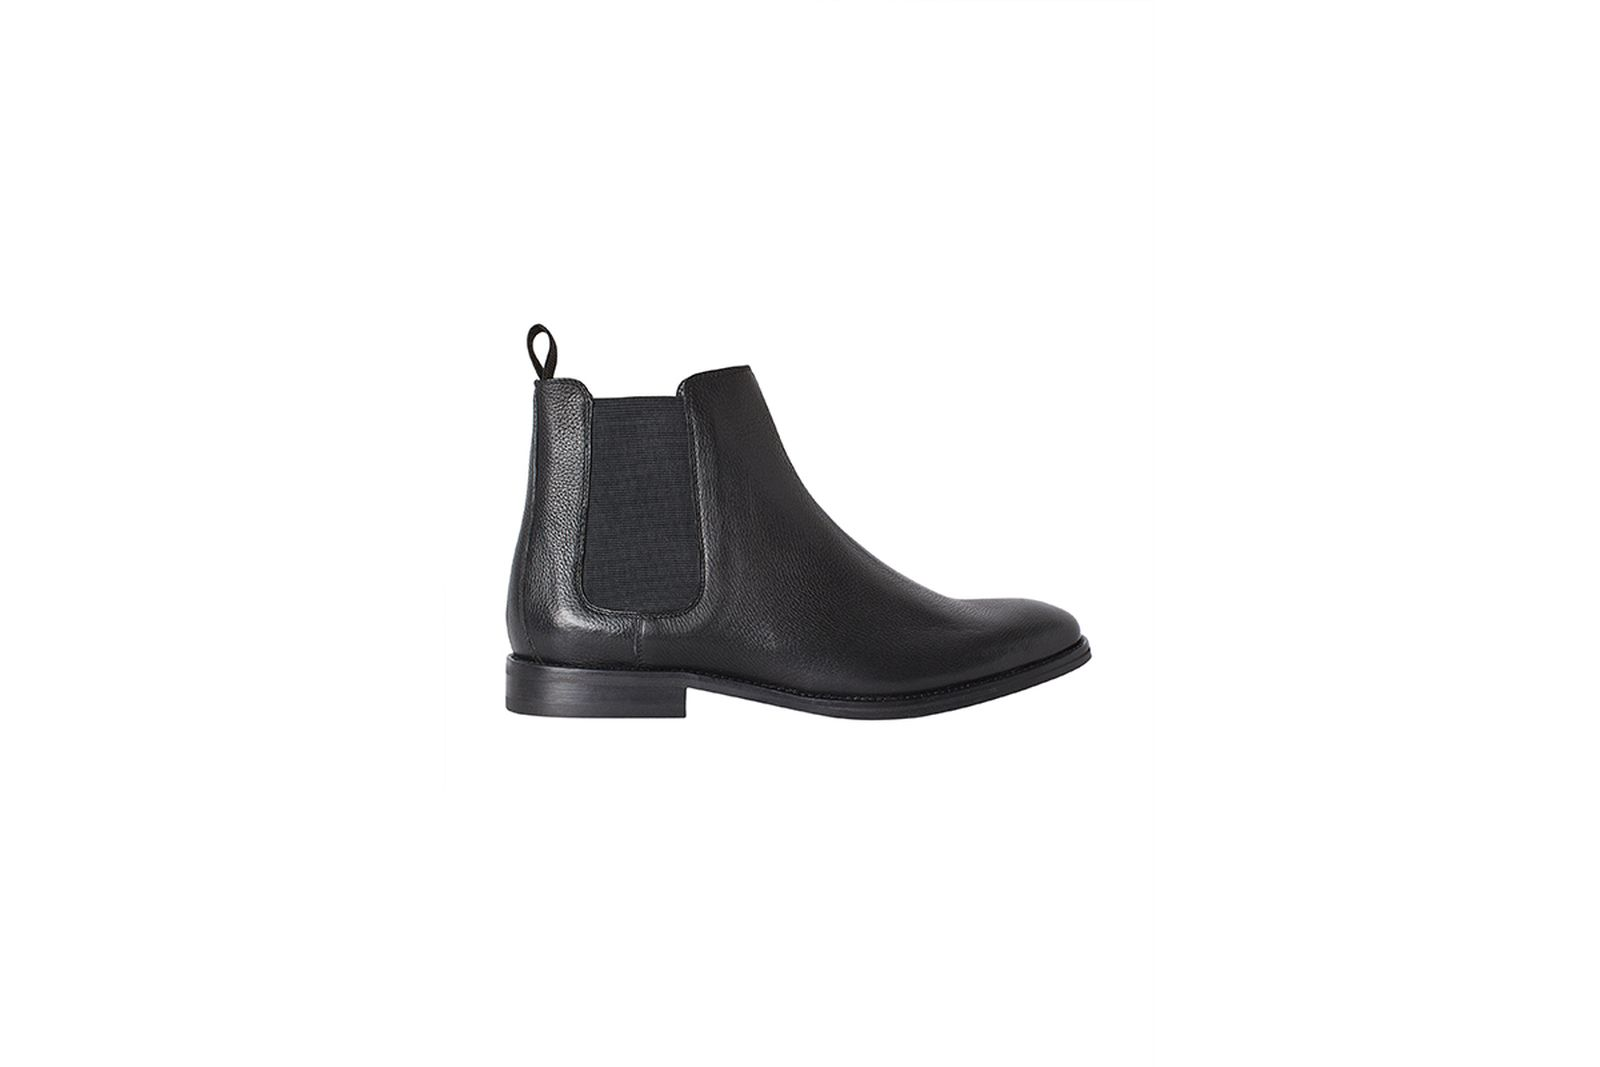 HM Chelsea Boots Gift Guide h&m holiday